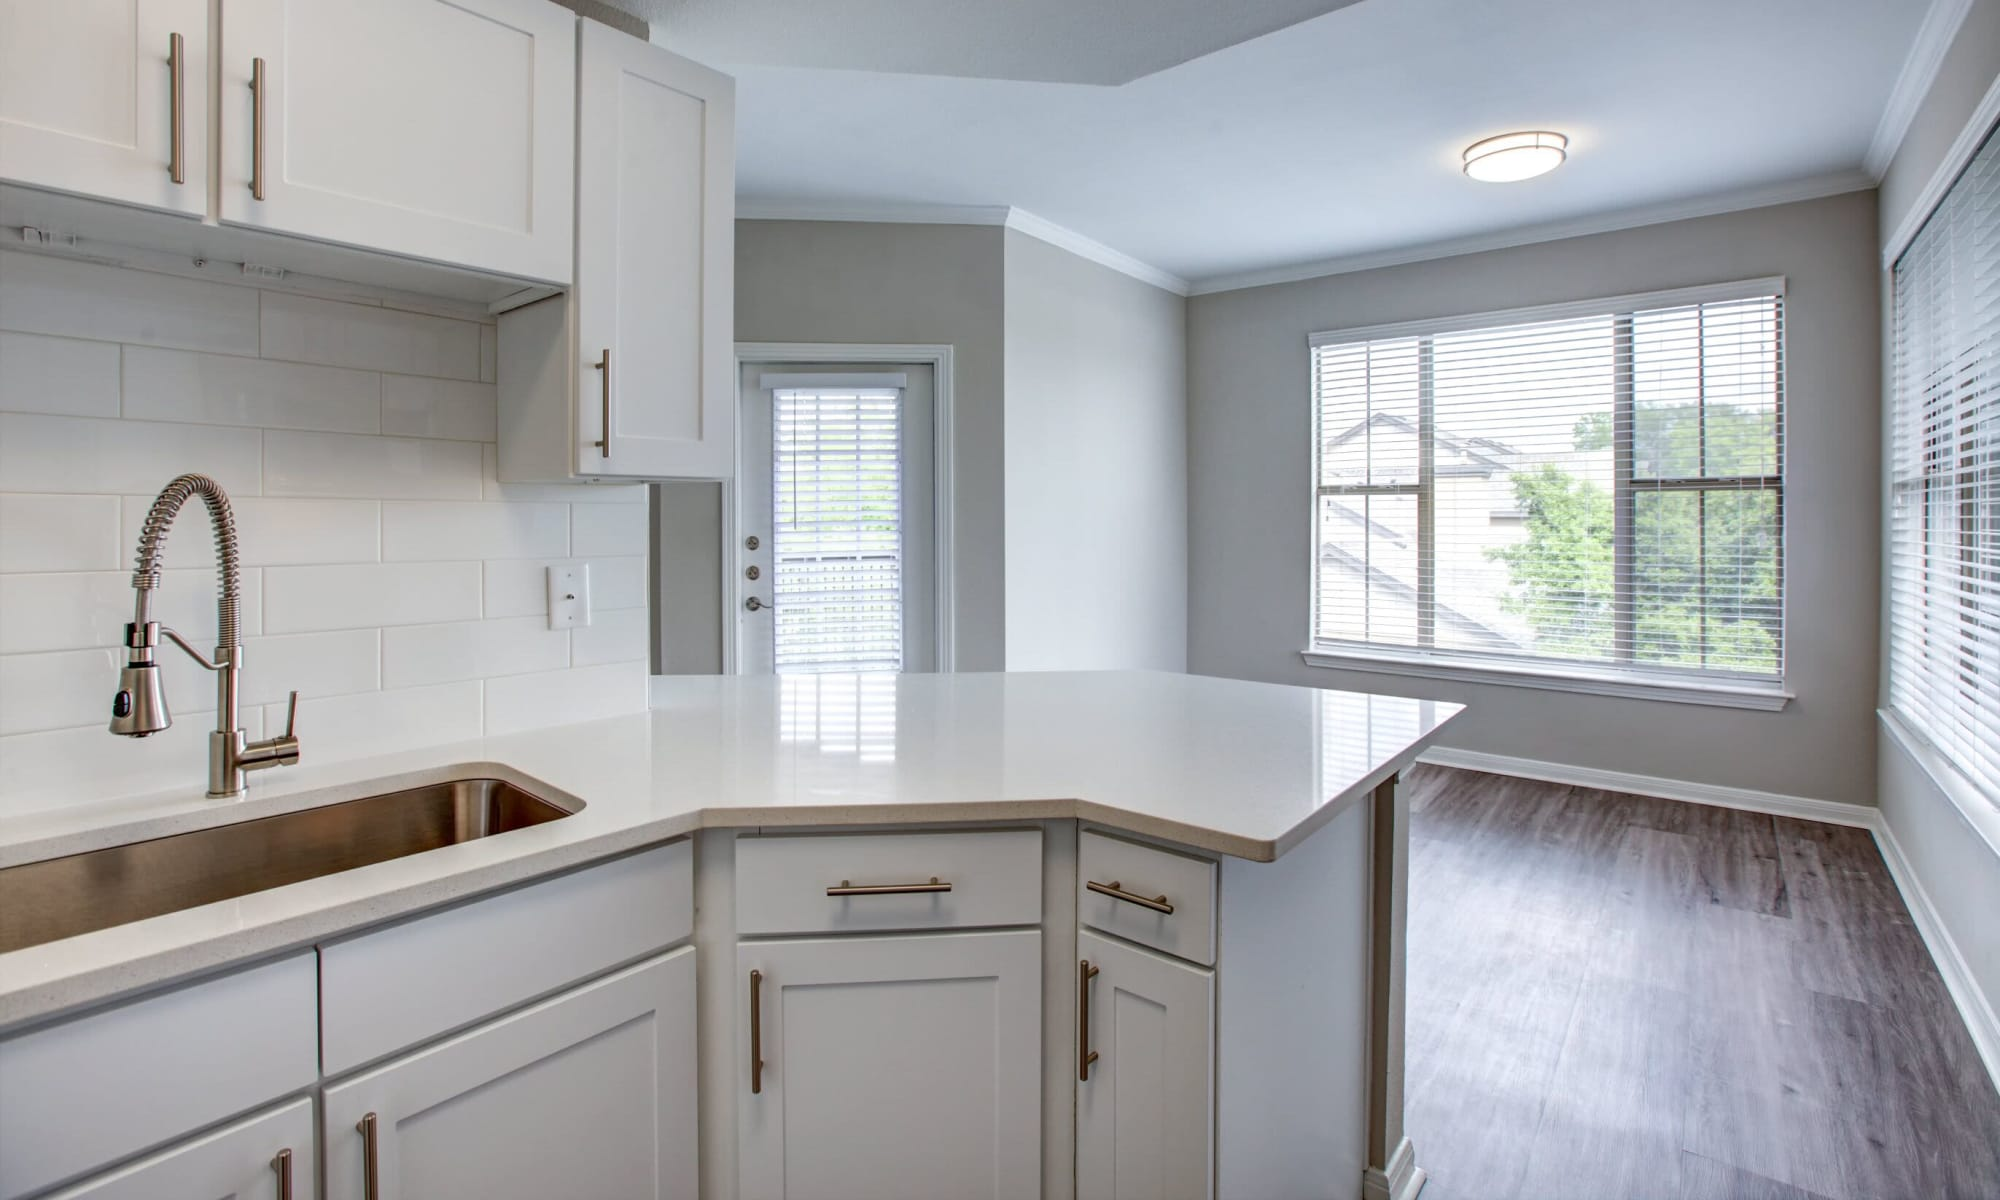 Beautifully renovated model home's kitchen at Riata Austin in Austin, Texas